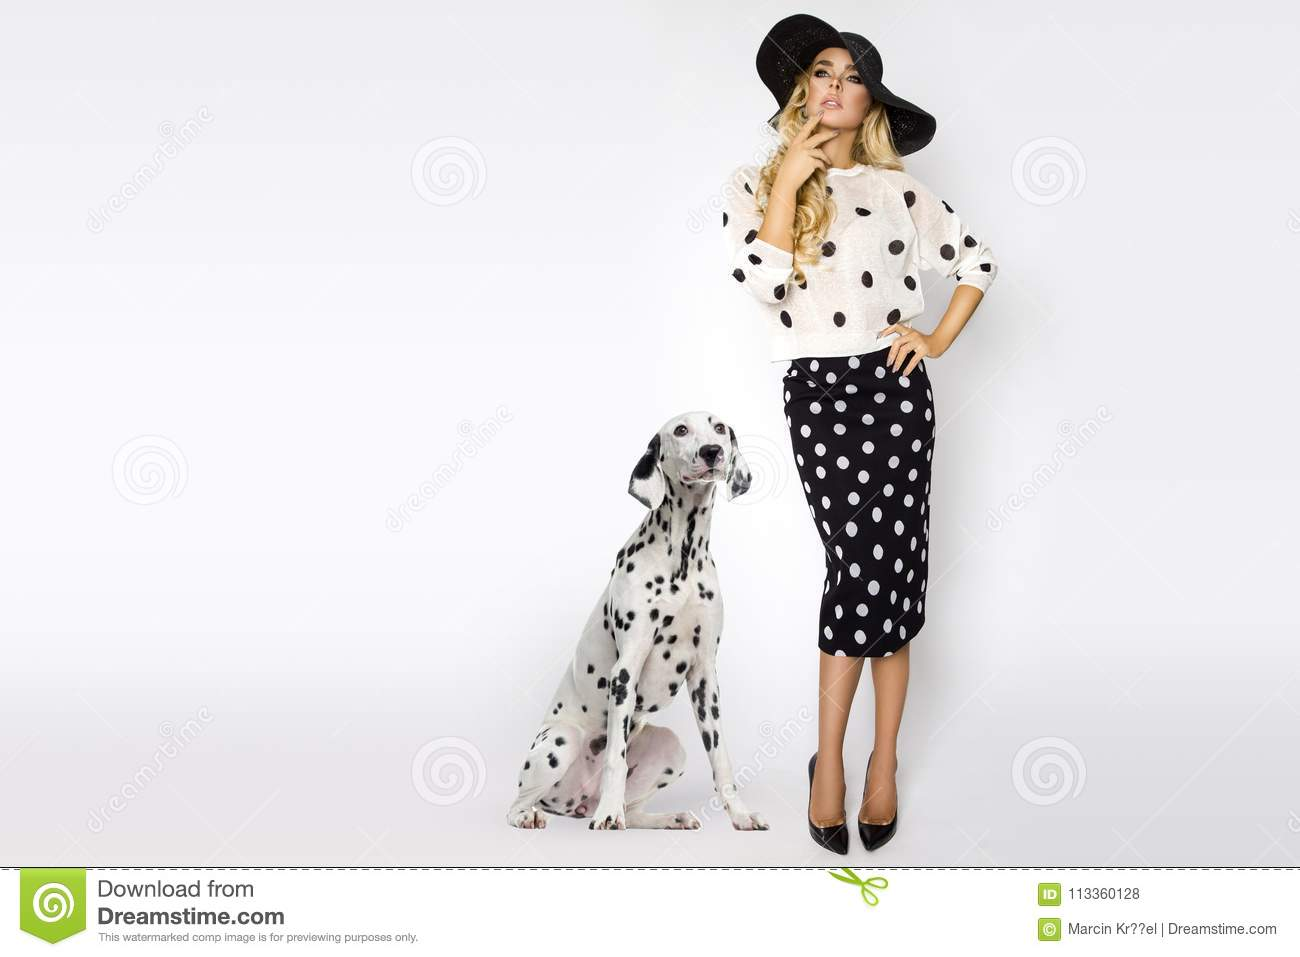 Download Beautiful, Blonde Woman In Elegant Polka Dots And A Hat, Standing On A White Background Next To A Dalmatian Dog Stock Photo - Image of dress, makeup: 113360128